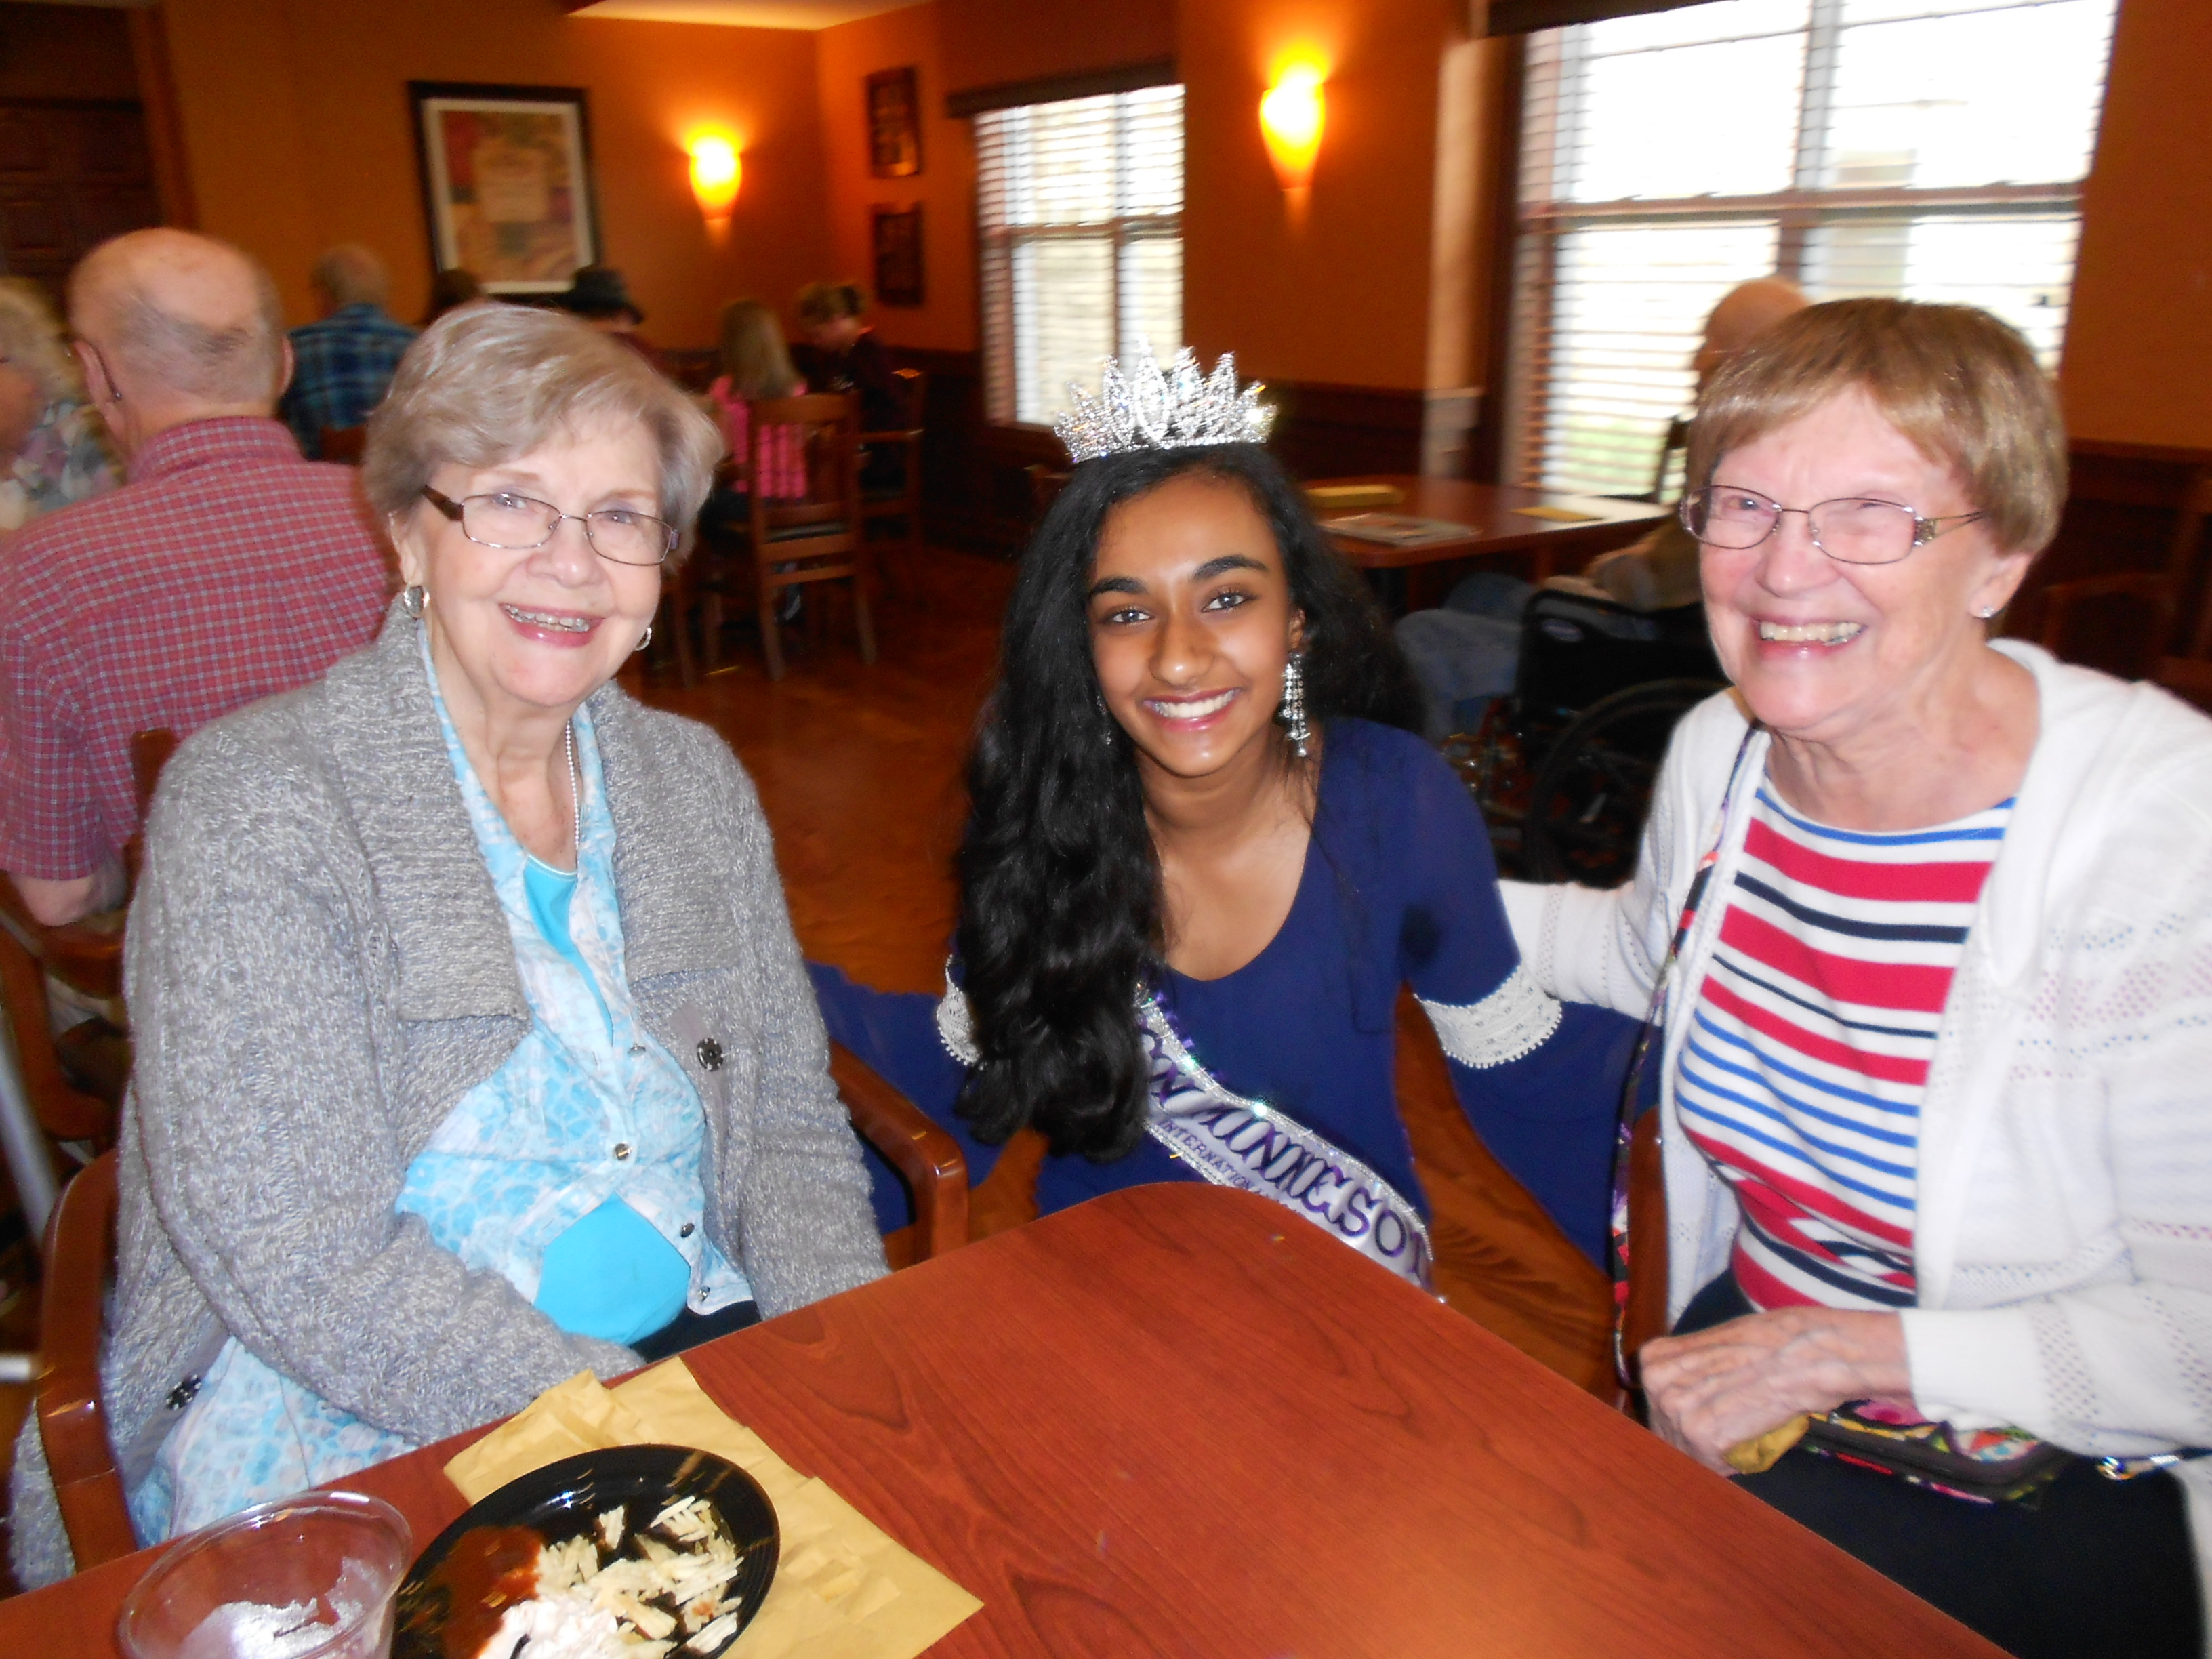 Miss plymouth teen competition in mn assured